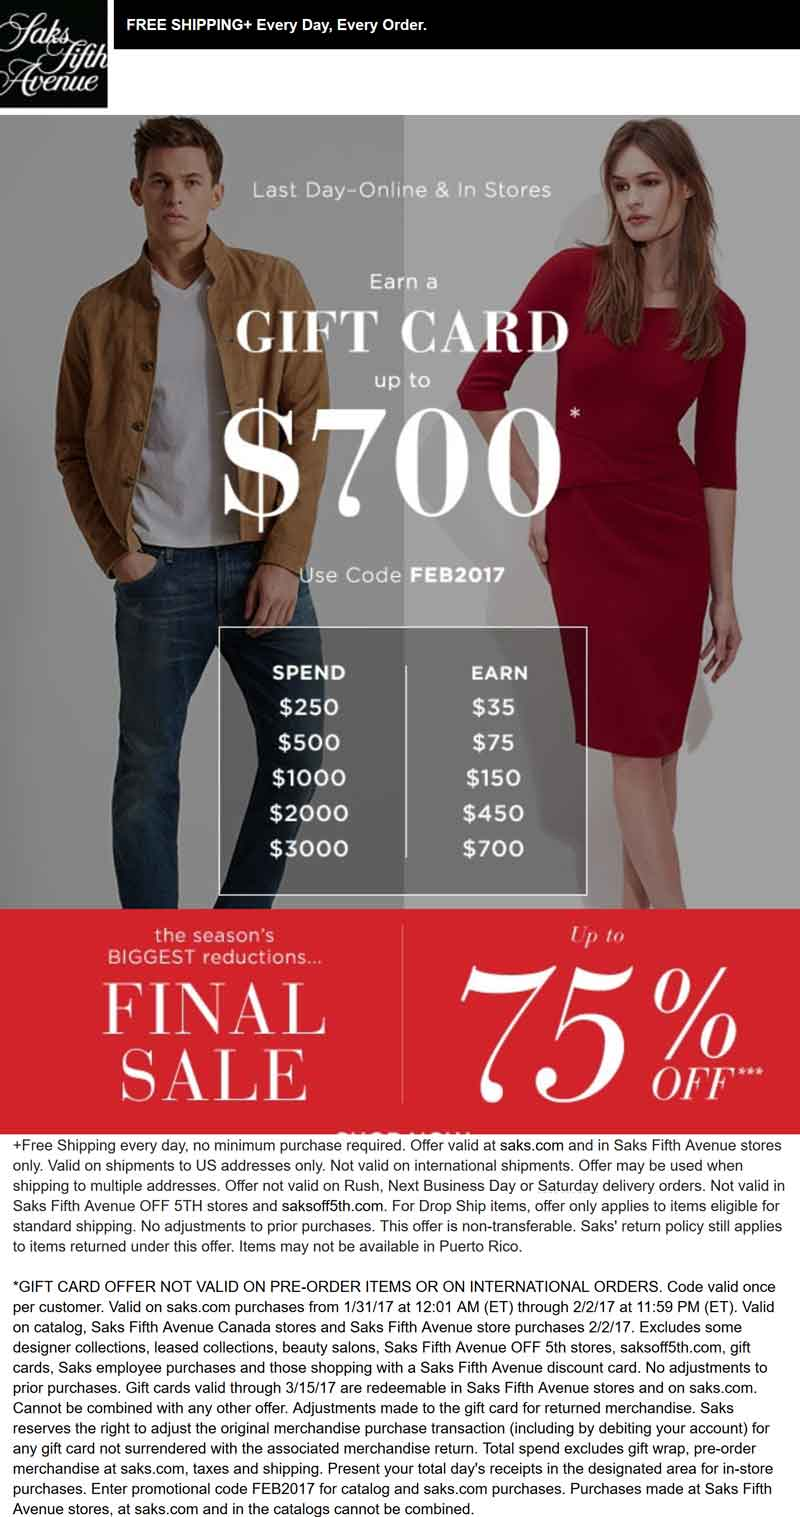 Saks Fifth Avenue Coupon August 2018 $35-$700 gift card free with $250+ today at Saks Fifth Avenue, or online via promo code FEB2017